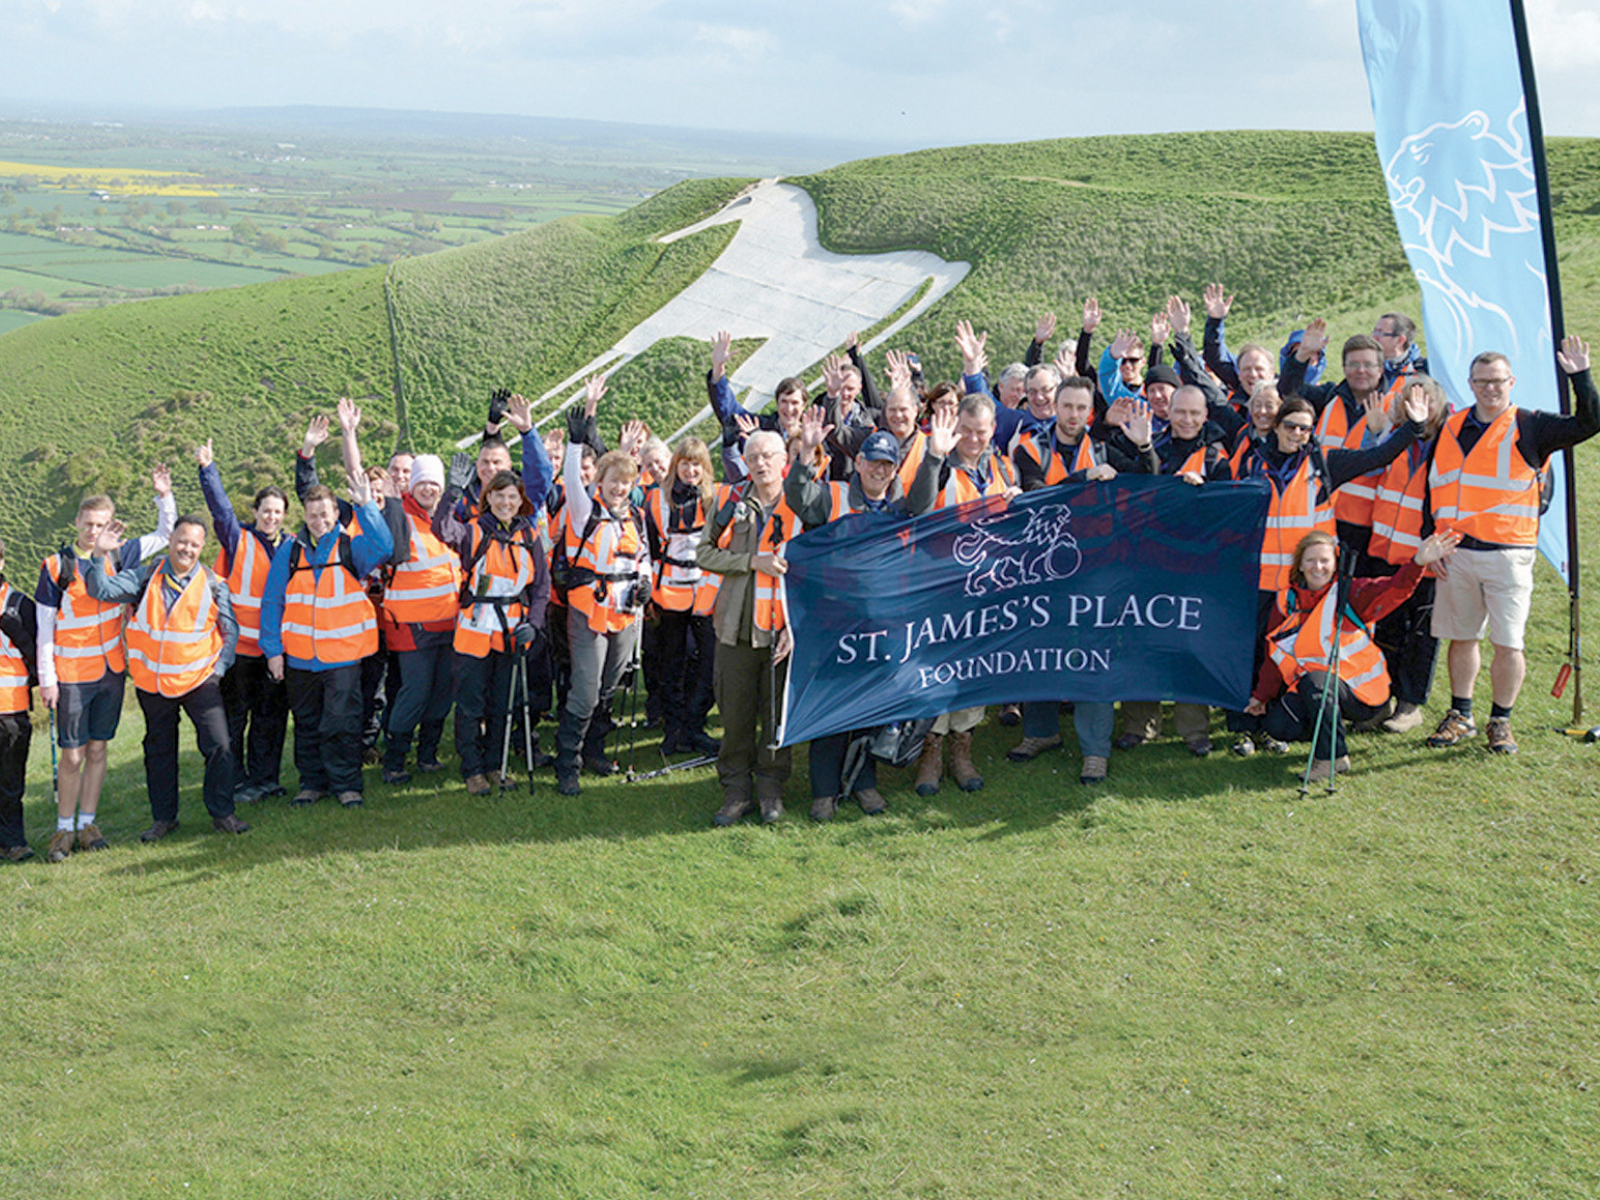 Large group of St. James's Place Wealth Management employees in the Vale of White Horse